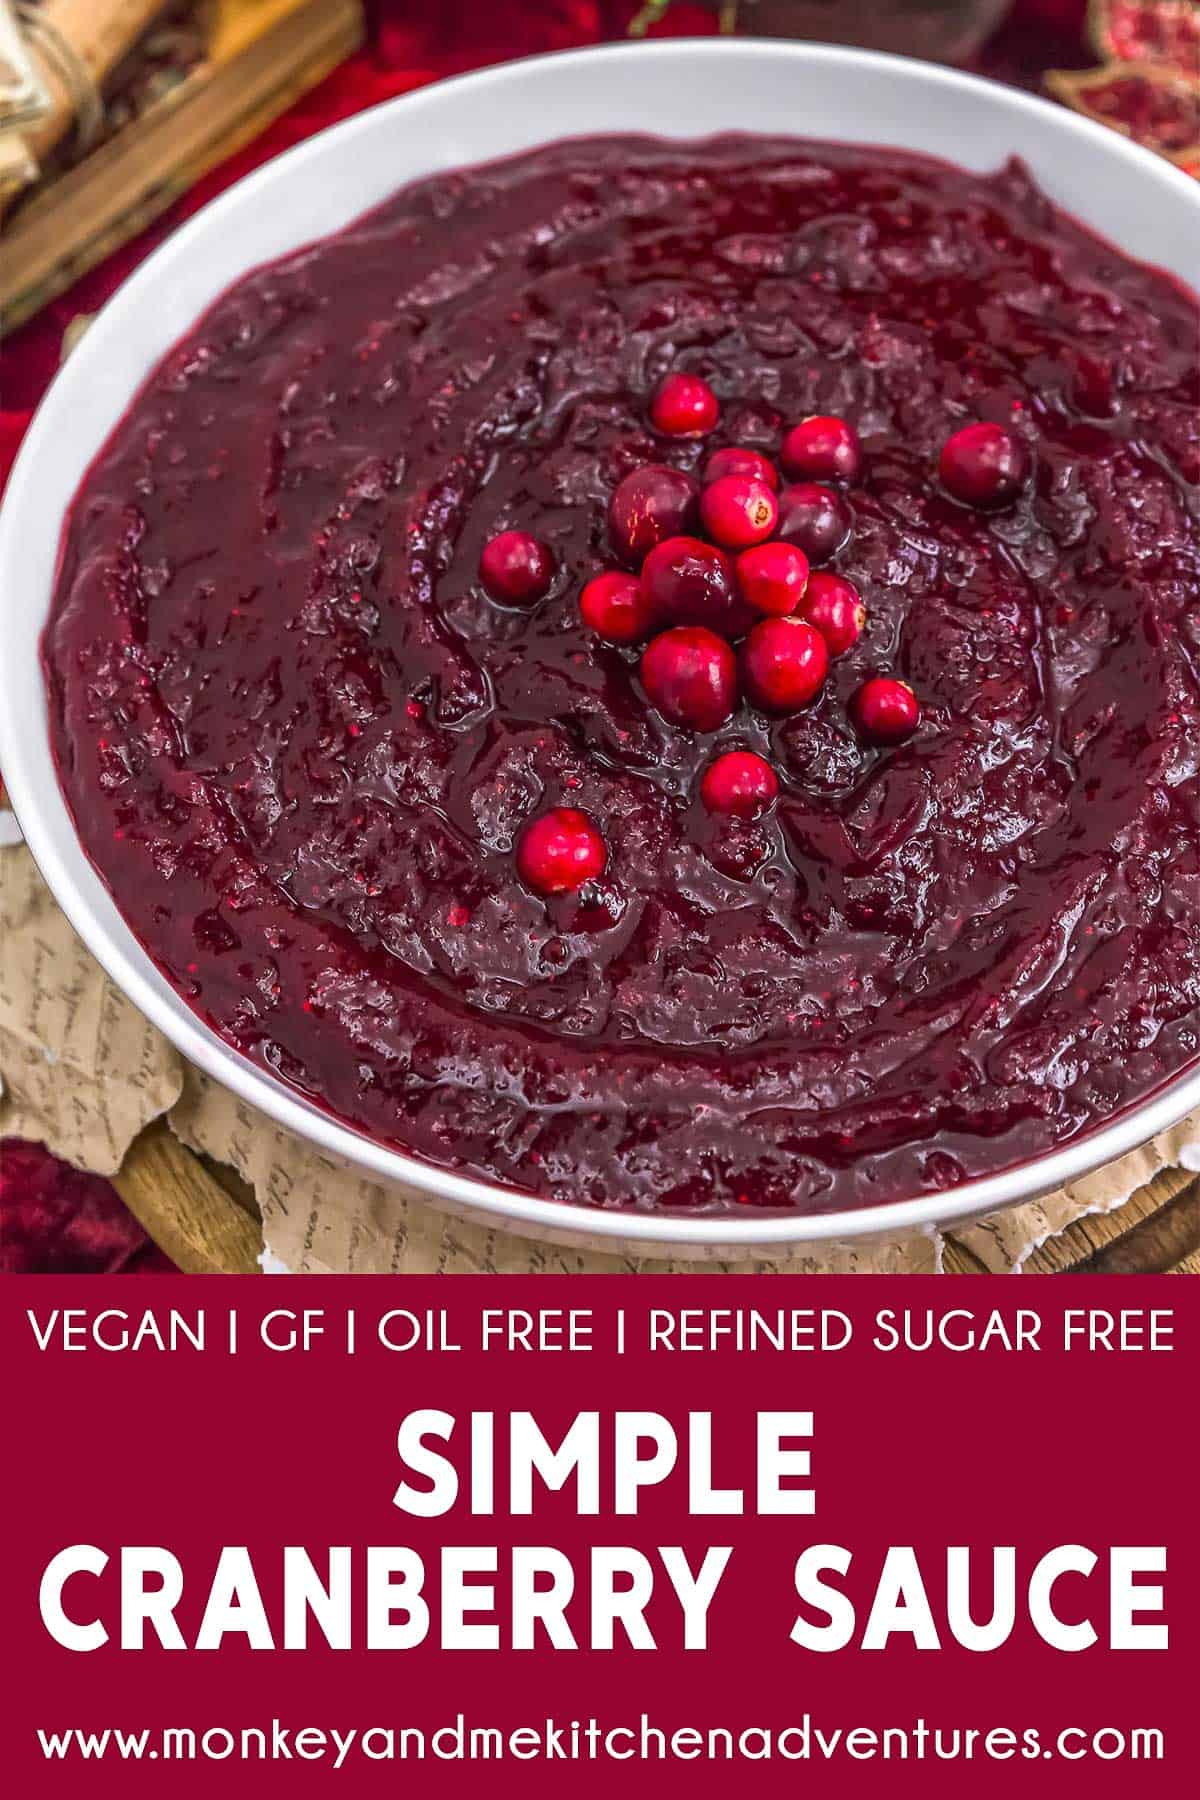 Simple Cranberry Sauce with text description